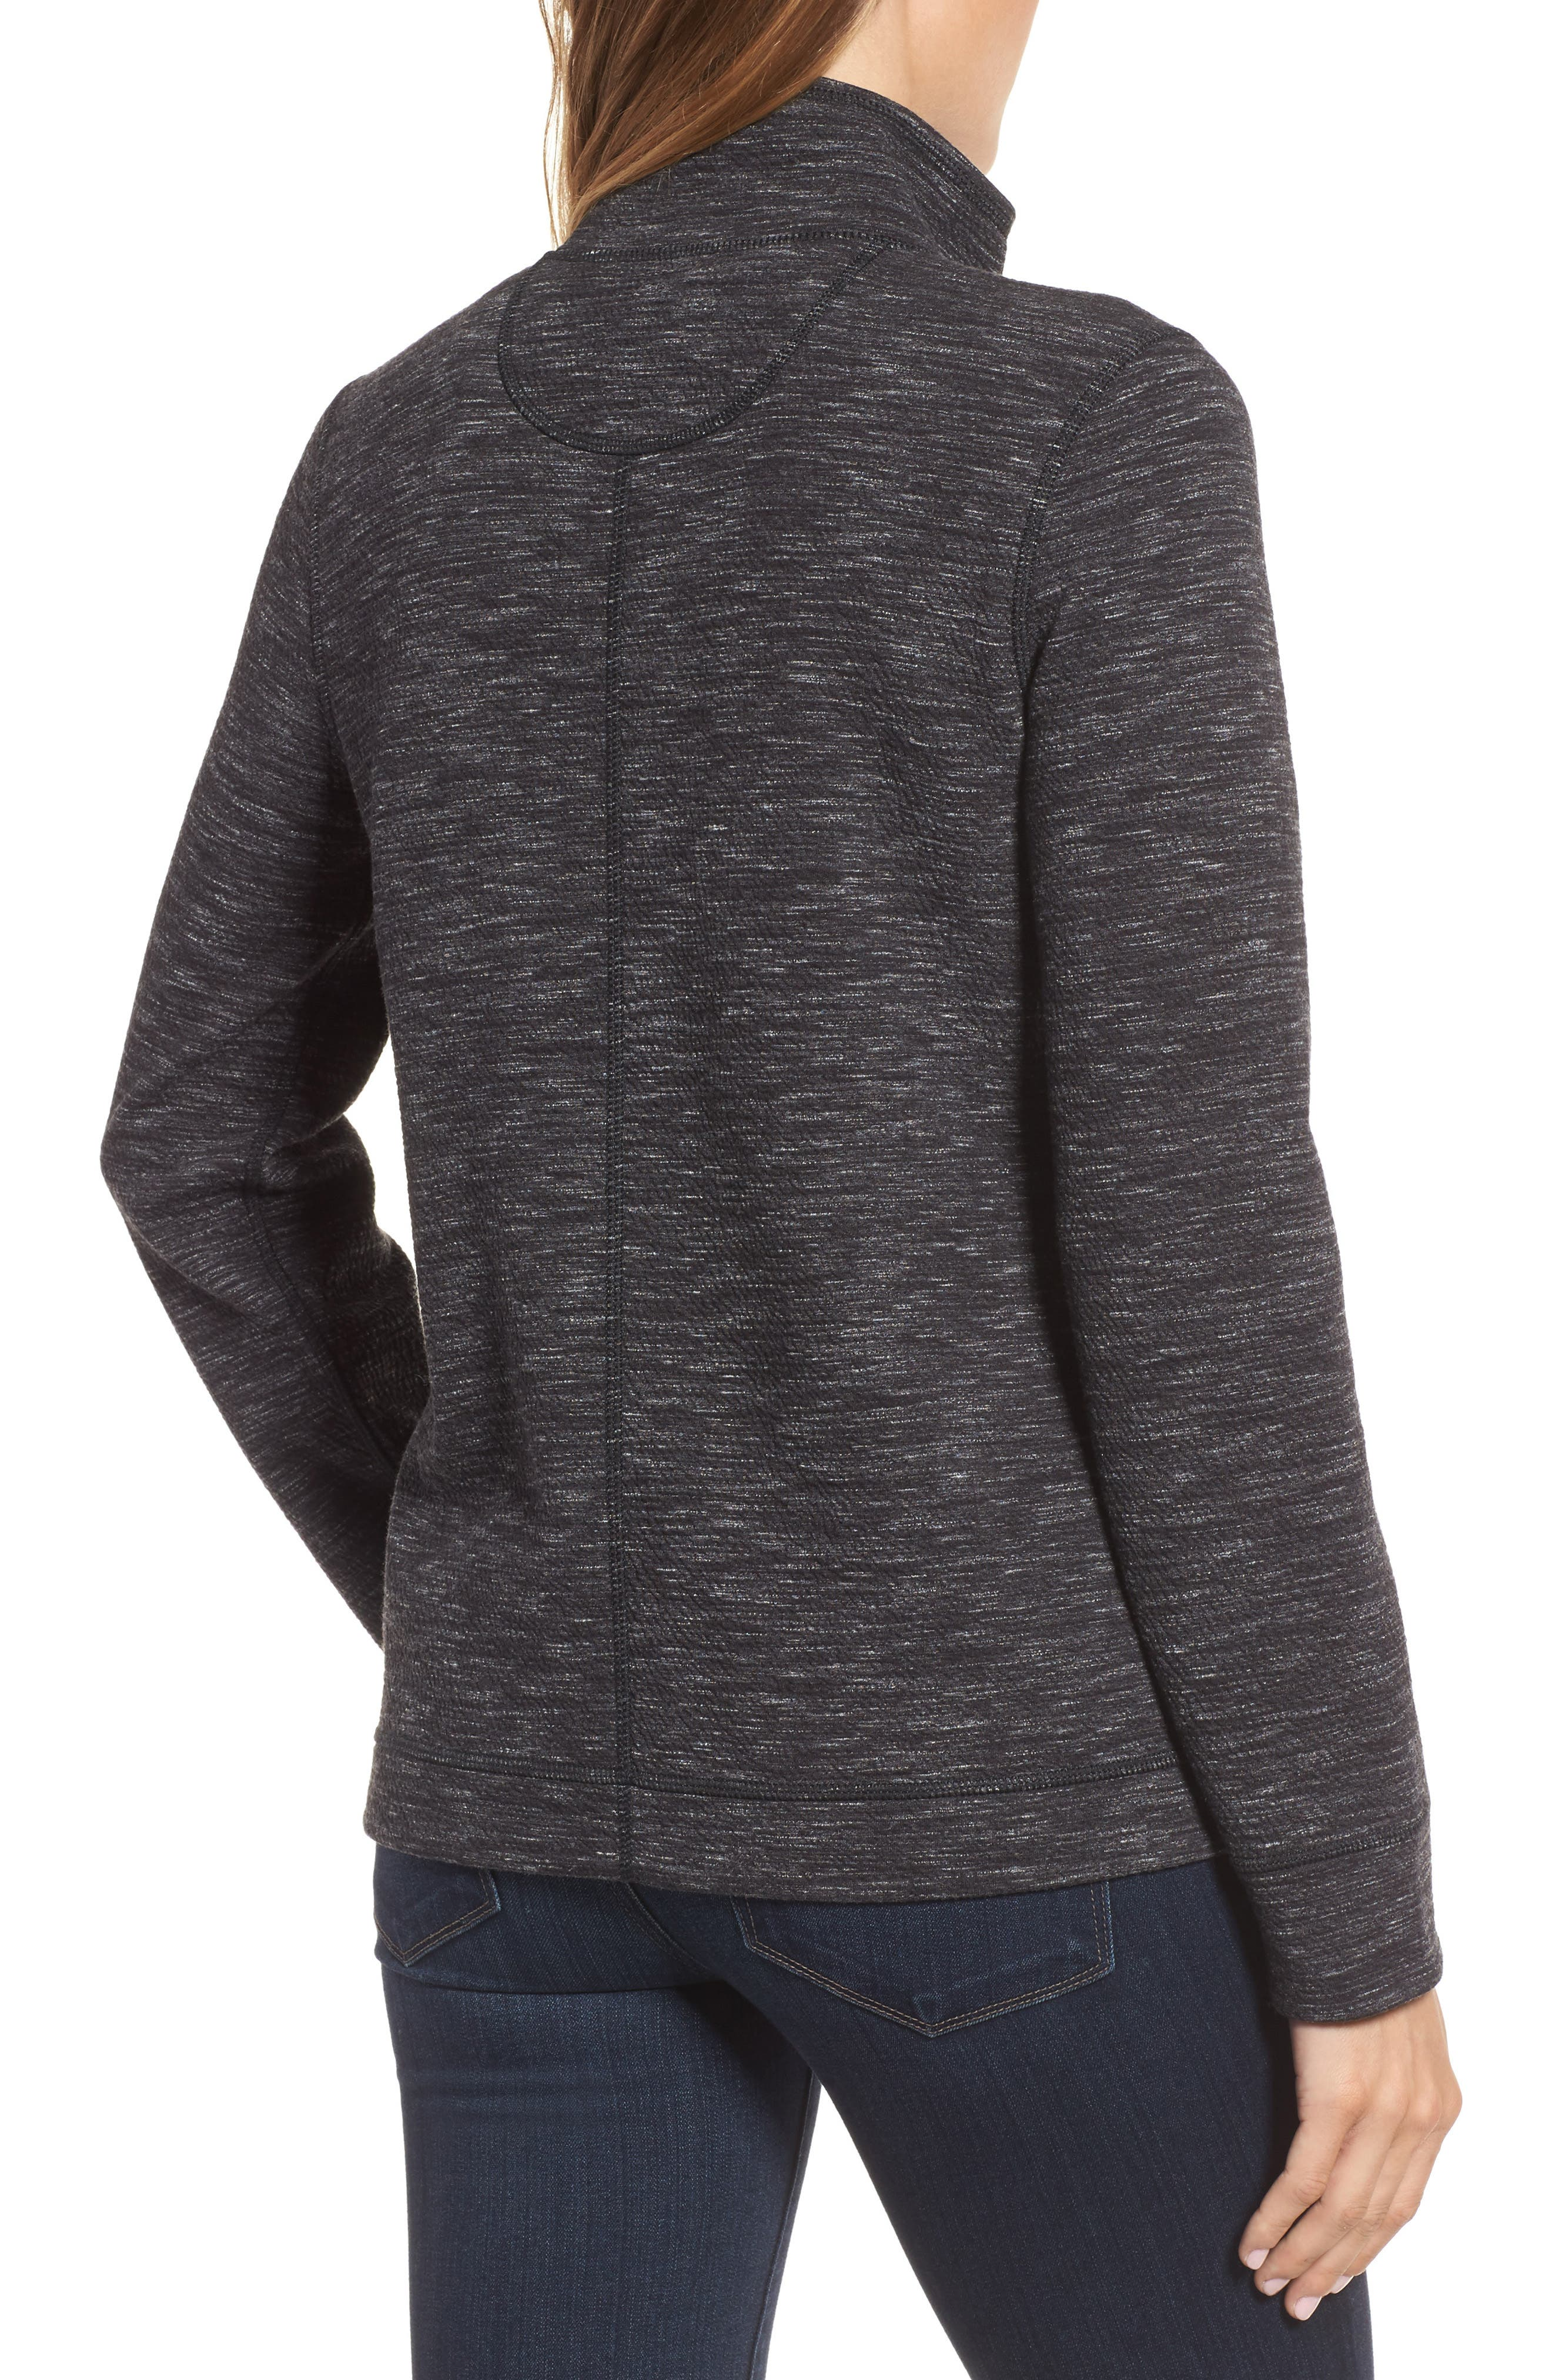 Reversible Marled Knit Jacket,                             Alternate thumbnail 2, color,                             Noir Heather